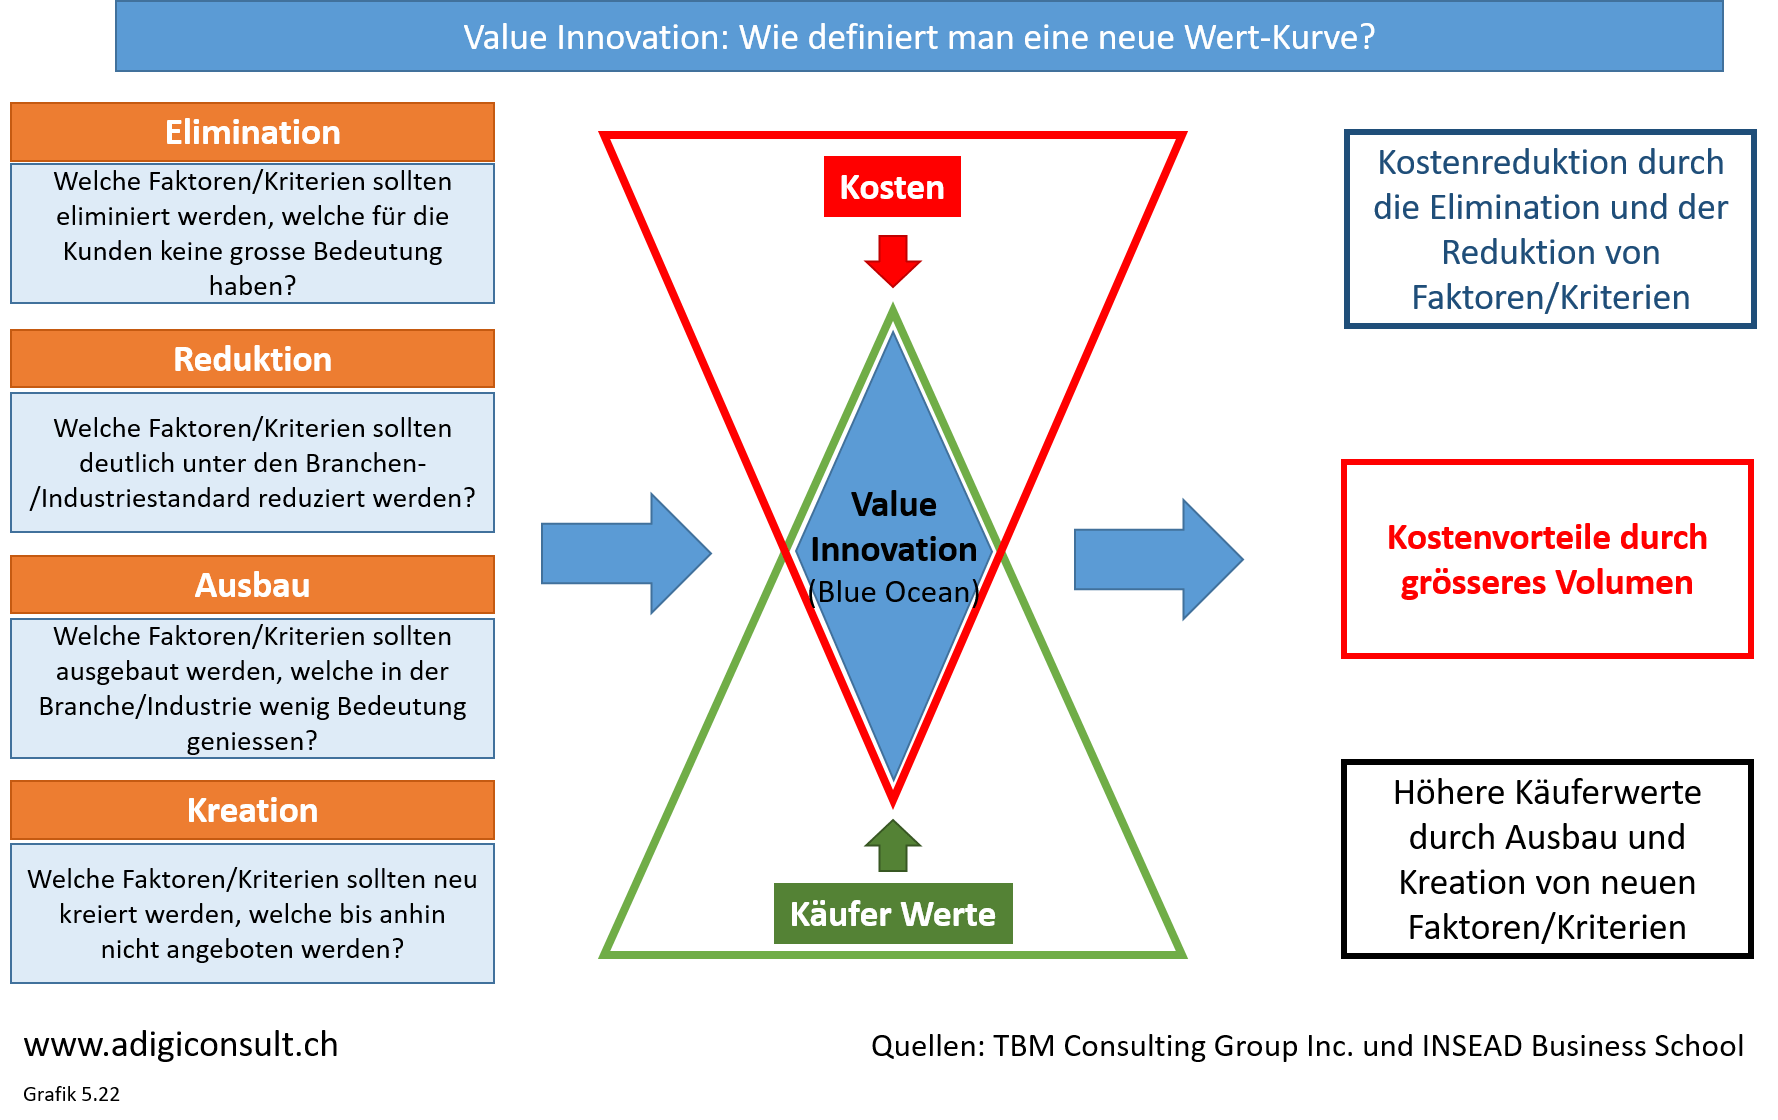 disruptiv and value innovation The classic pattern of disruptive innovation identified by christensen in 1997 is one in which an unobtrusive competitor eats away at the low end of an incumbent's market with a lower quality product the incumbent is happy to concede the low-value customers and concentrates on adding more features for its base of.